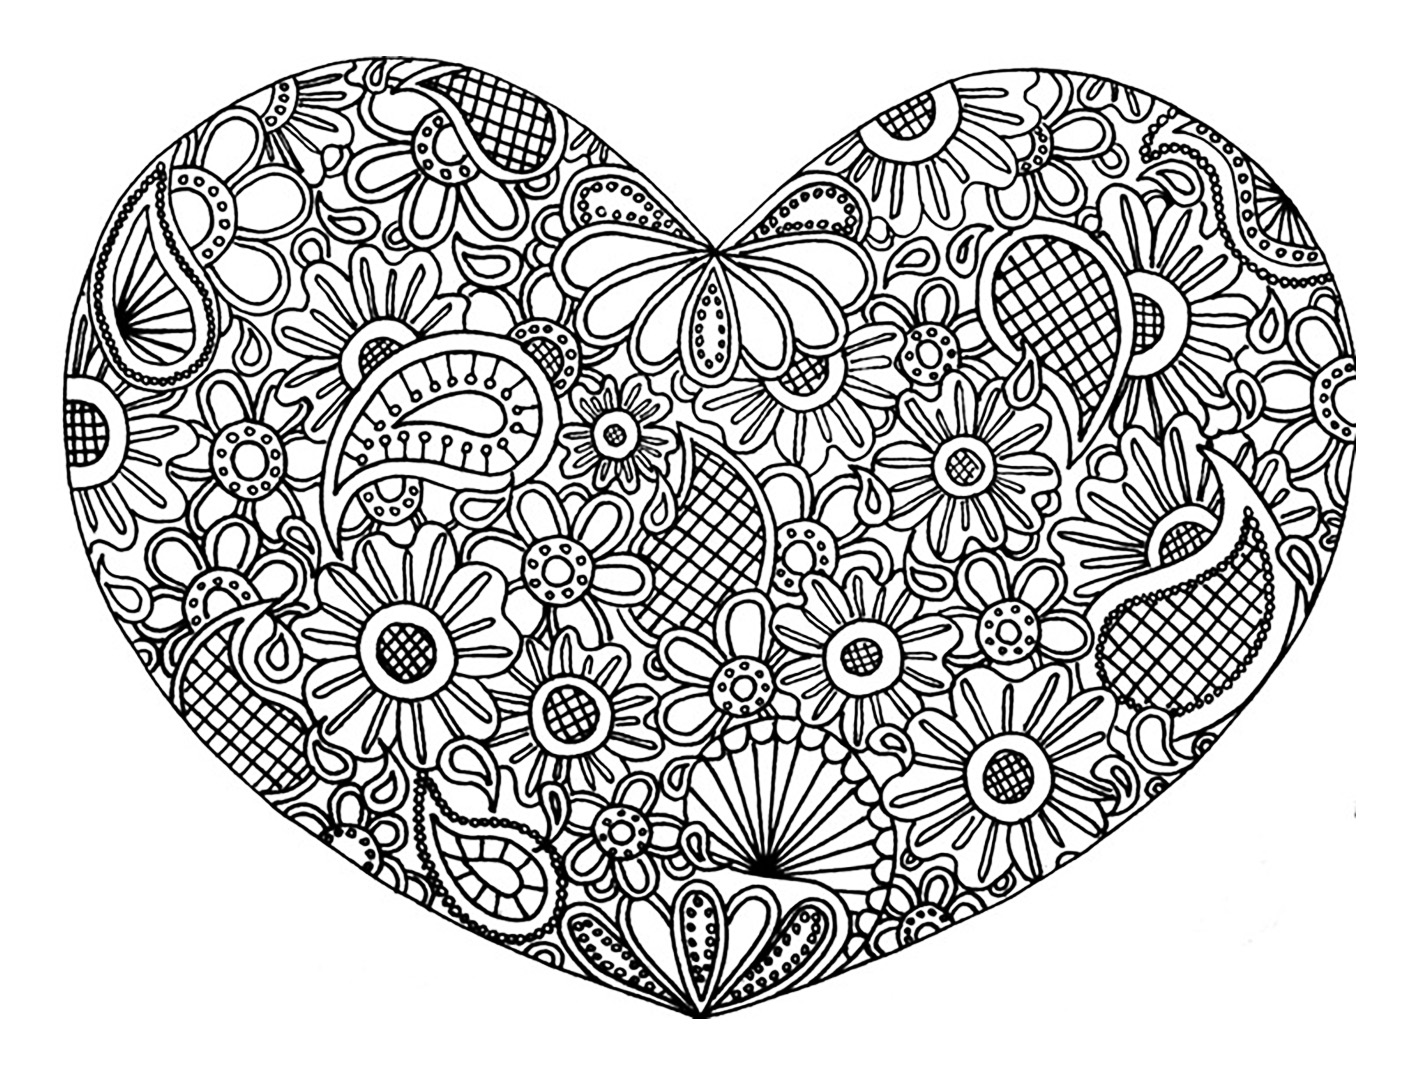 Love heart with flowers - Anti stress Adult Coloring Pages